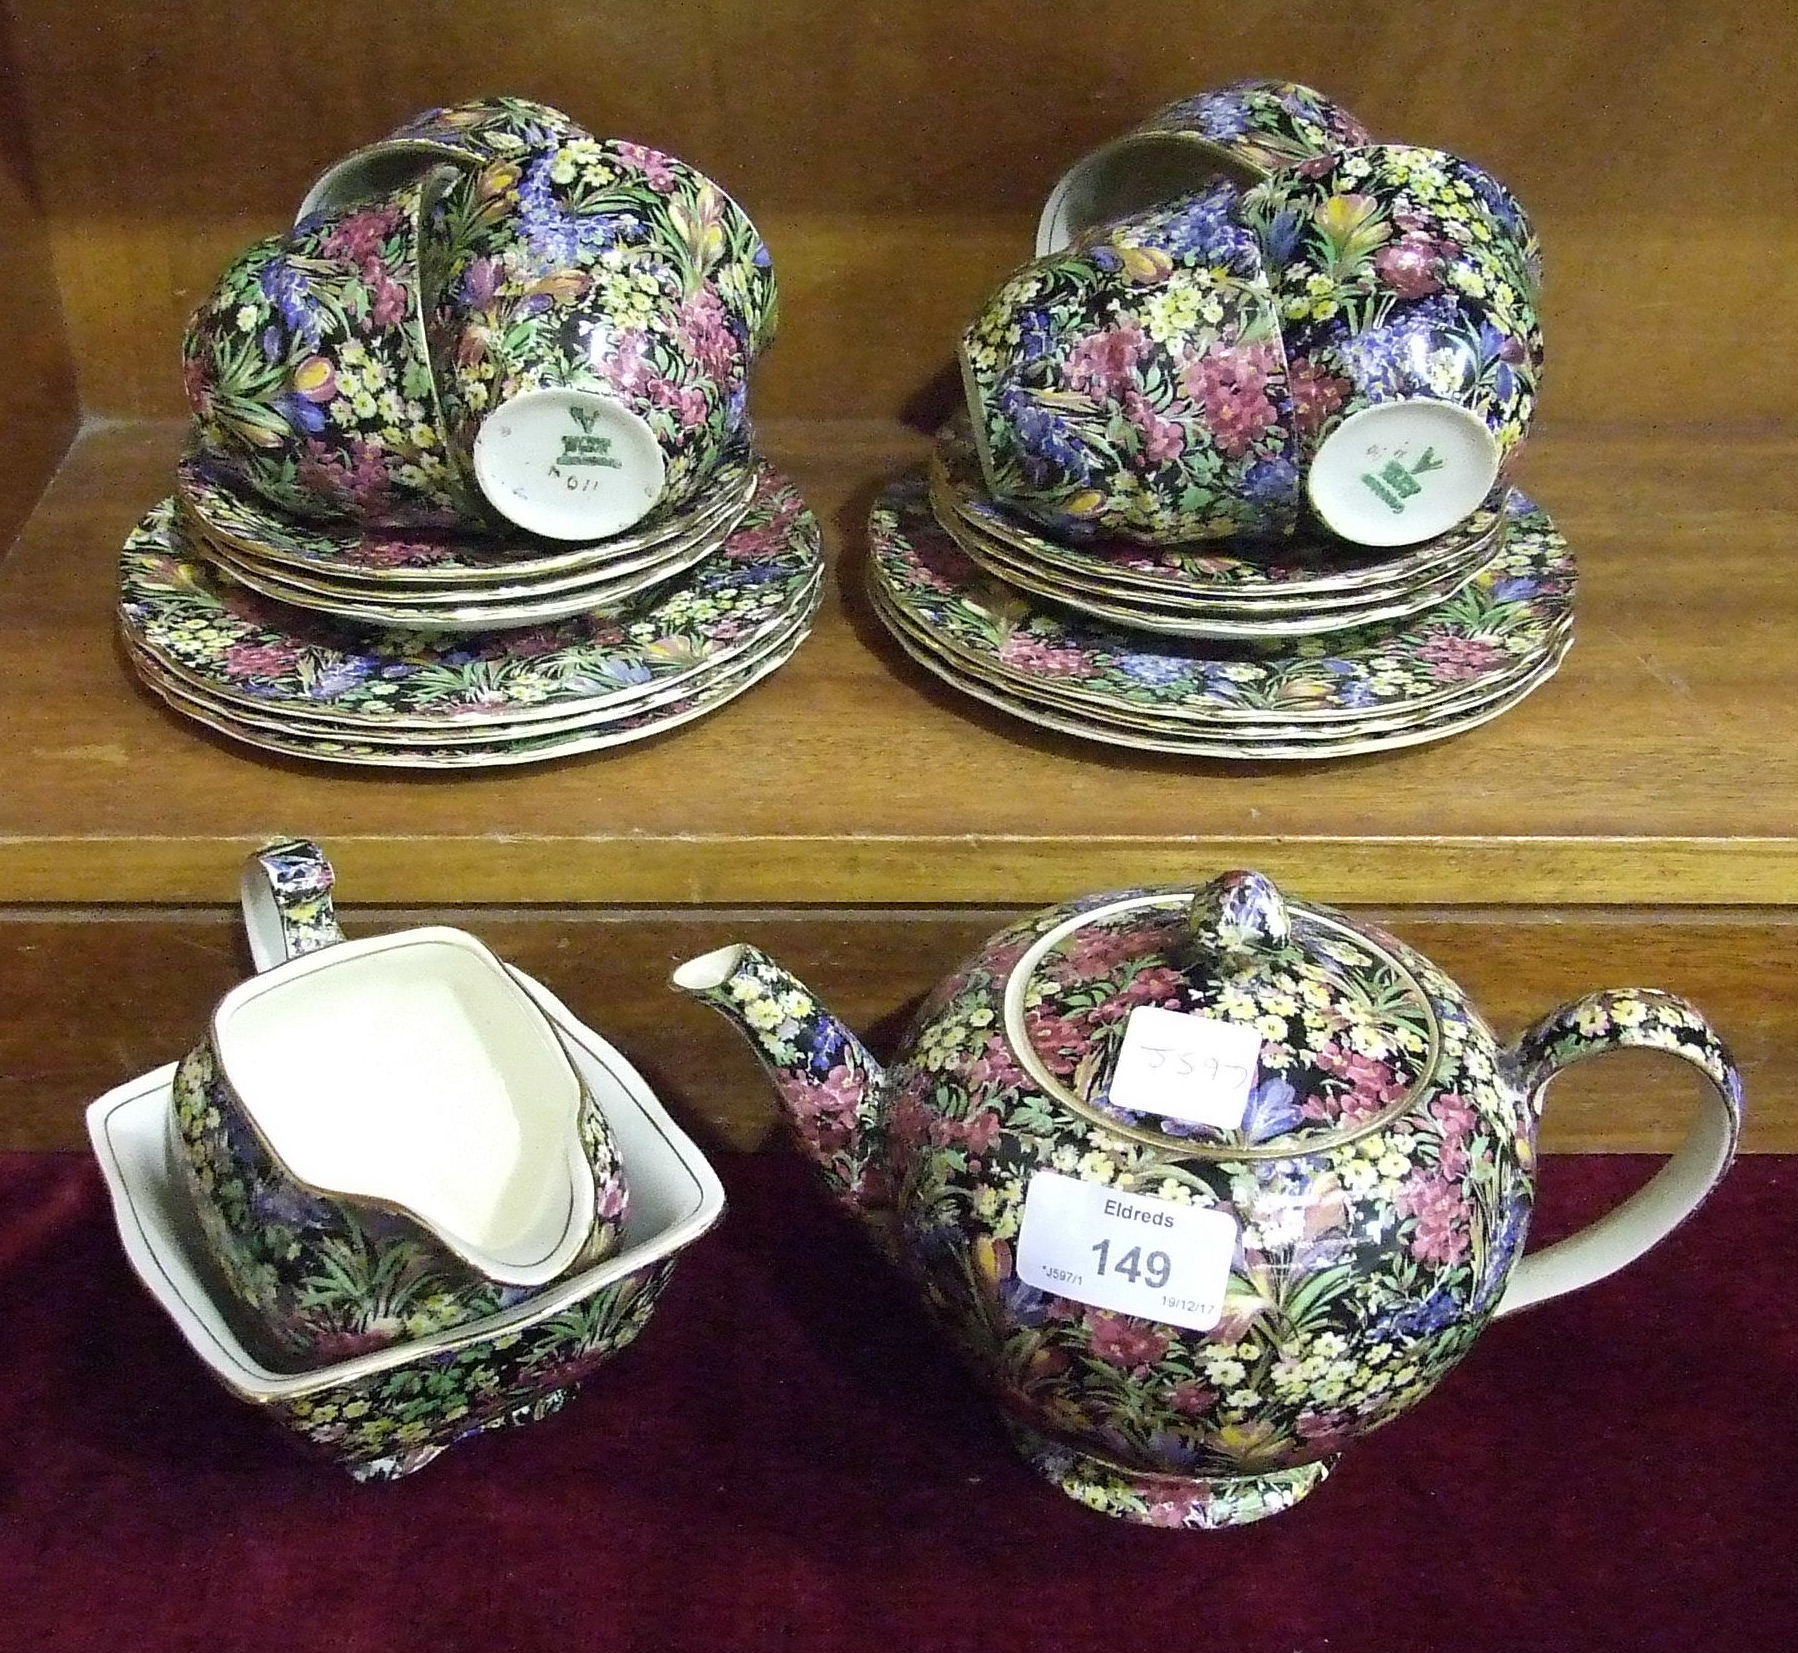 Lot 149 - A Grimwades Royal Winton tea service with profuse overall foliate decoration, 21 pieces.